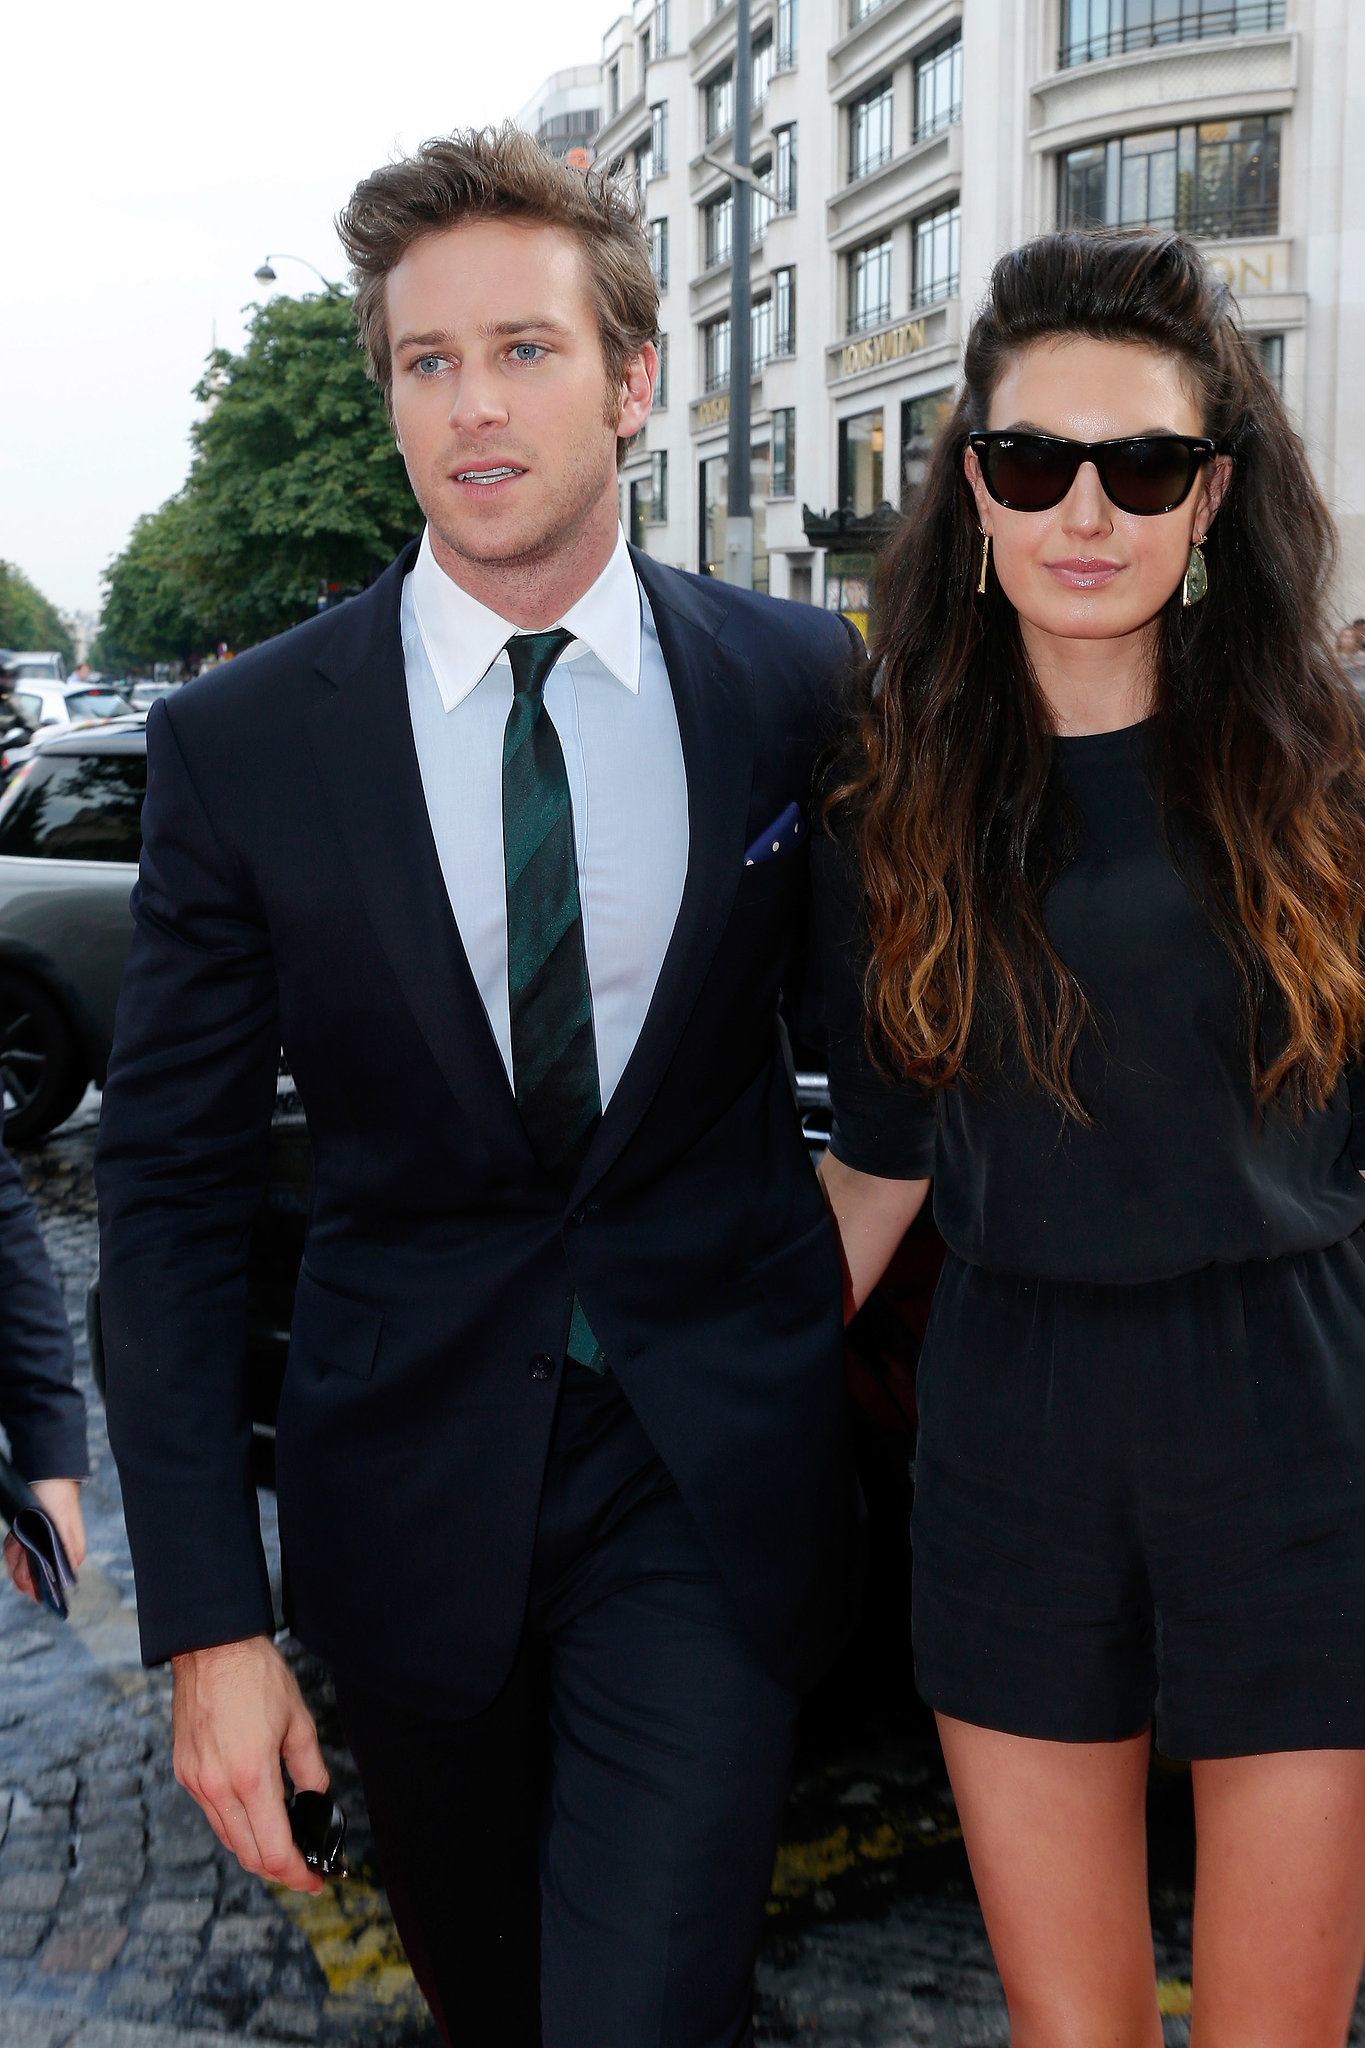 Armie Hammer and Elizabeth Chambers walked onto the Paris ...